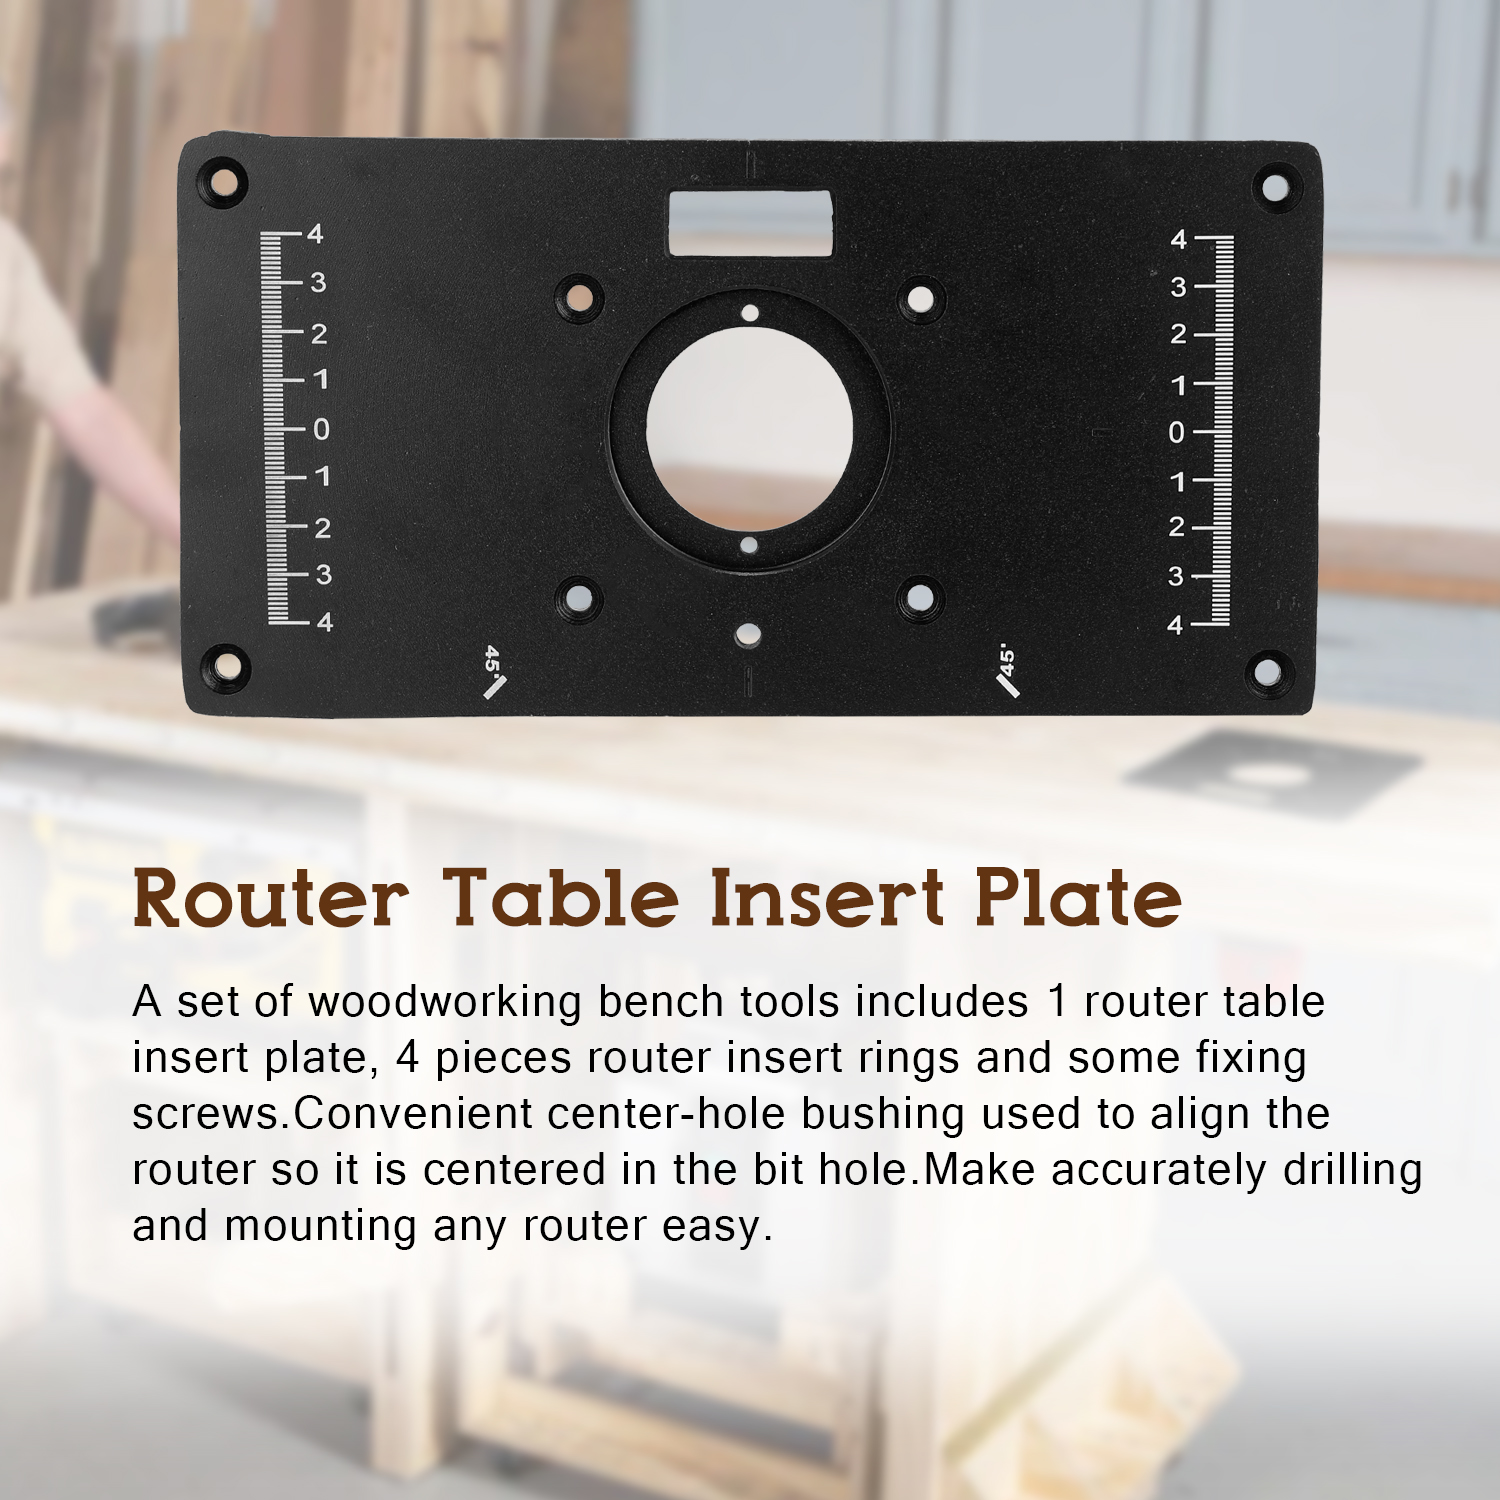 Multifunctional Router Table Insert Plate Woodworking Benches Aluminium Wood Router Trimmer Models Engraving Machine With 4 Rings Tools Walmart Com Walmart Com